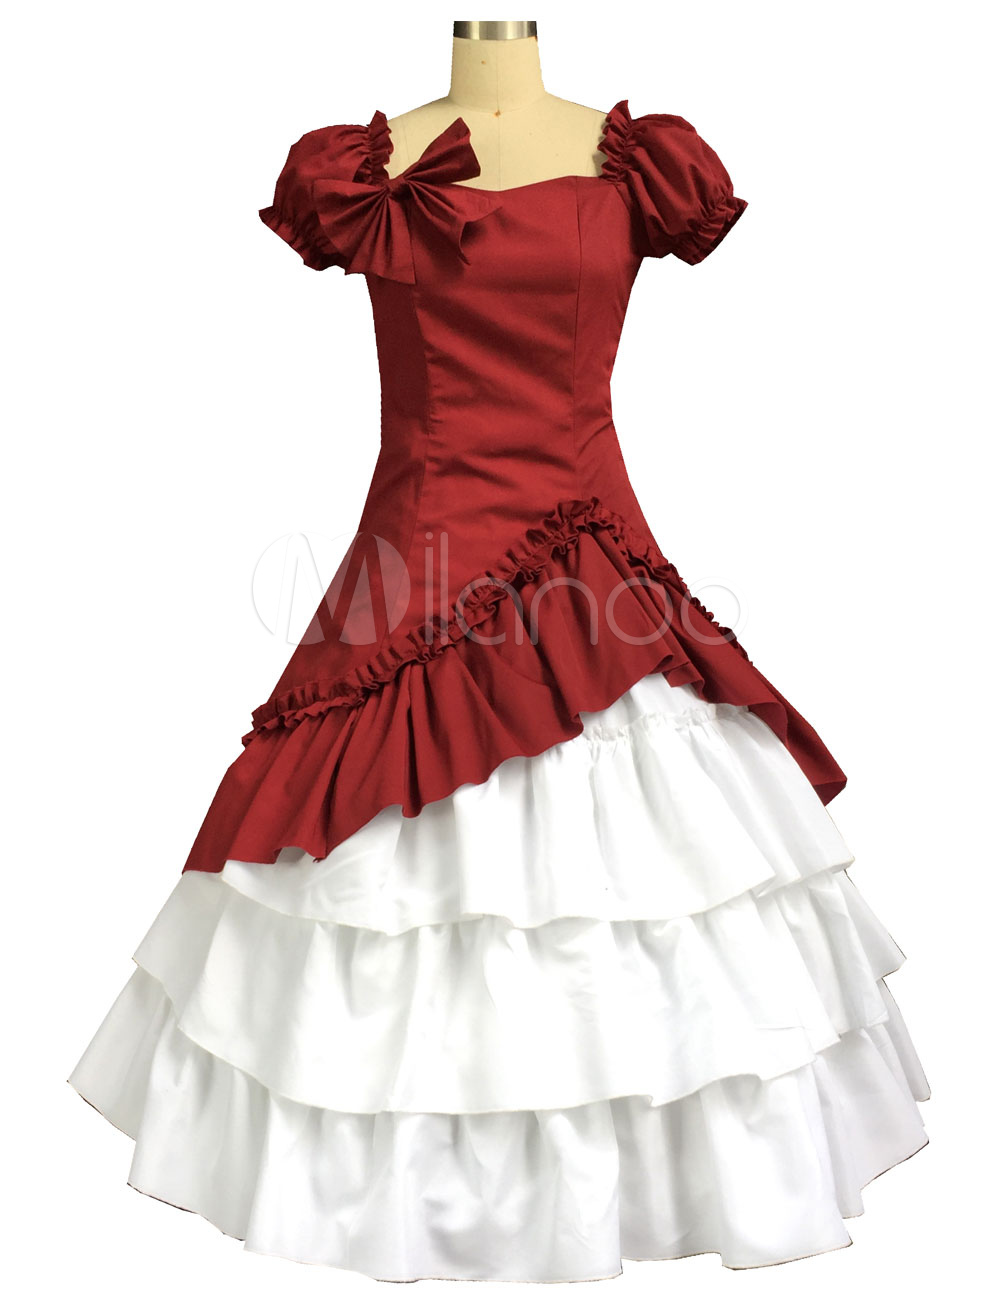 Buy Red Classic Vintage Lolita Dress Halloween Cosplay Costume Halloween for $95.99 in Milanoo store